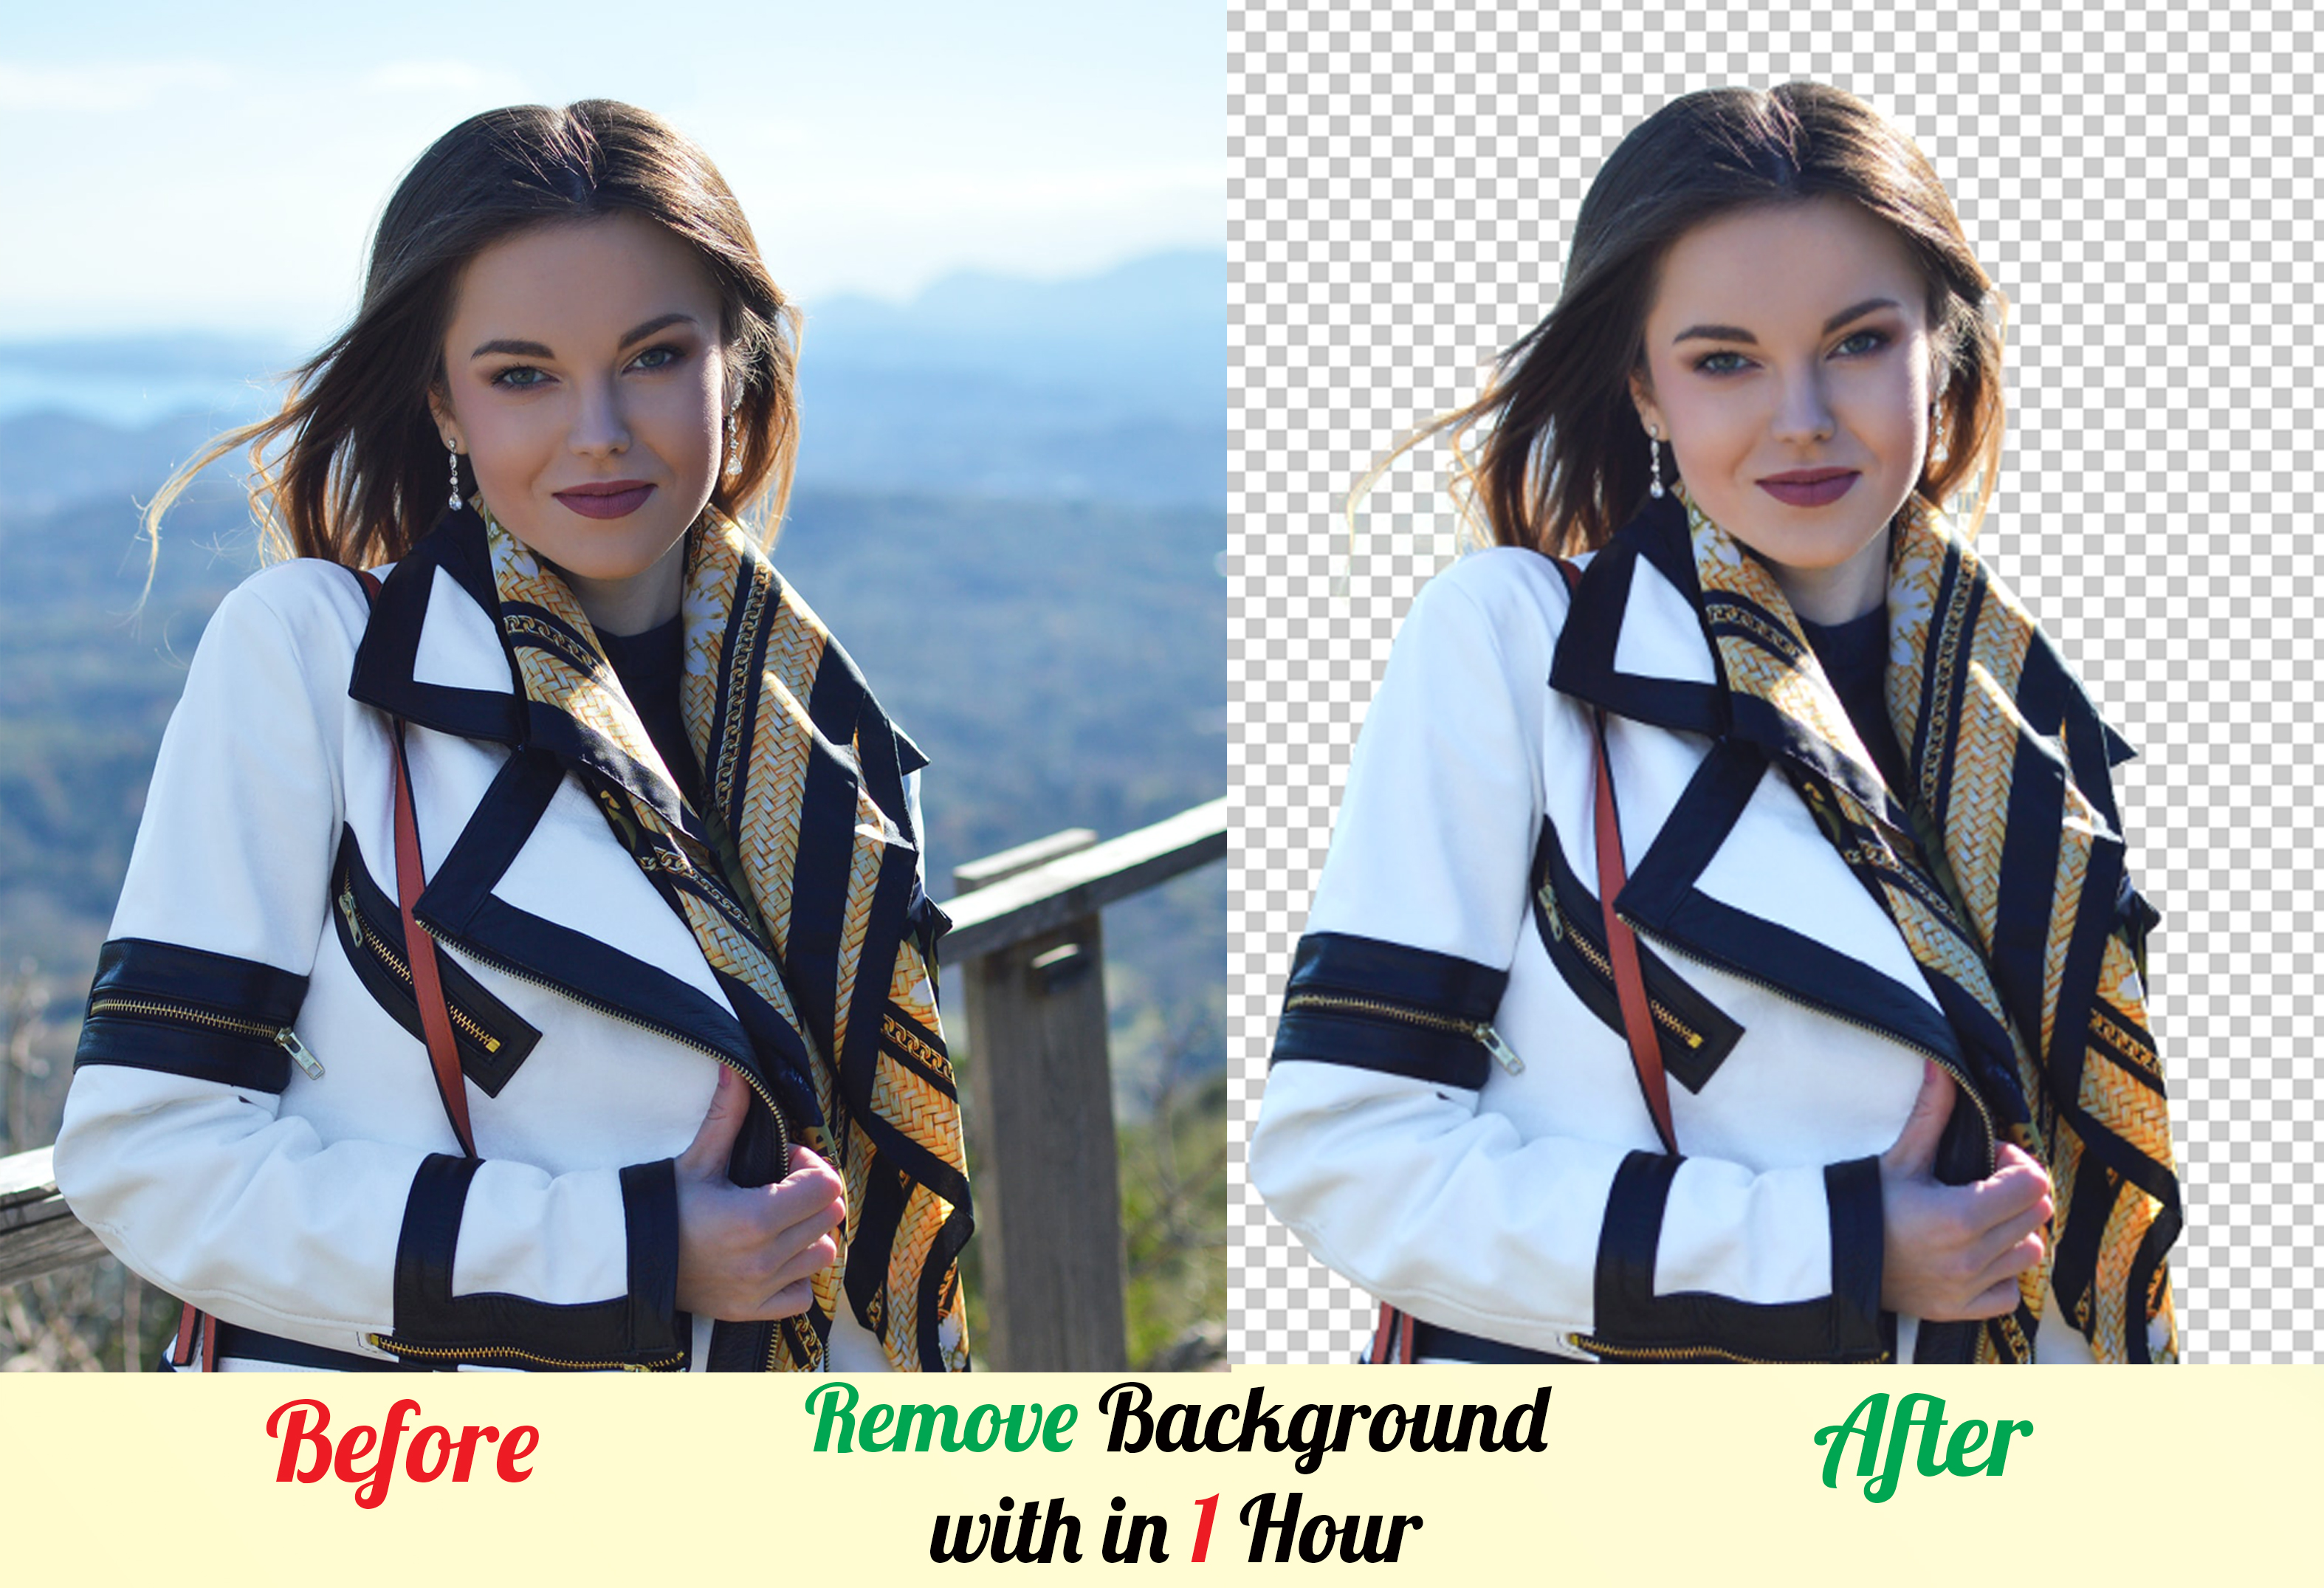 I can remove the background of your photo in just 1 hour